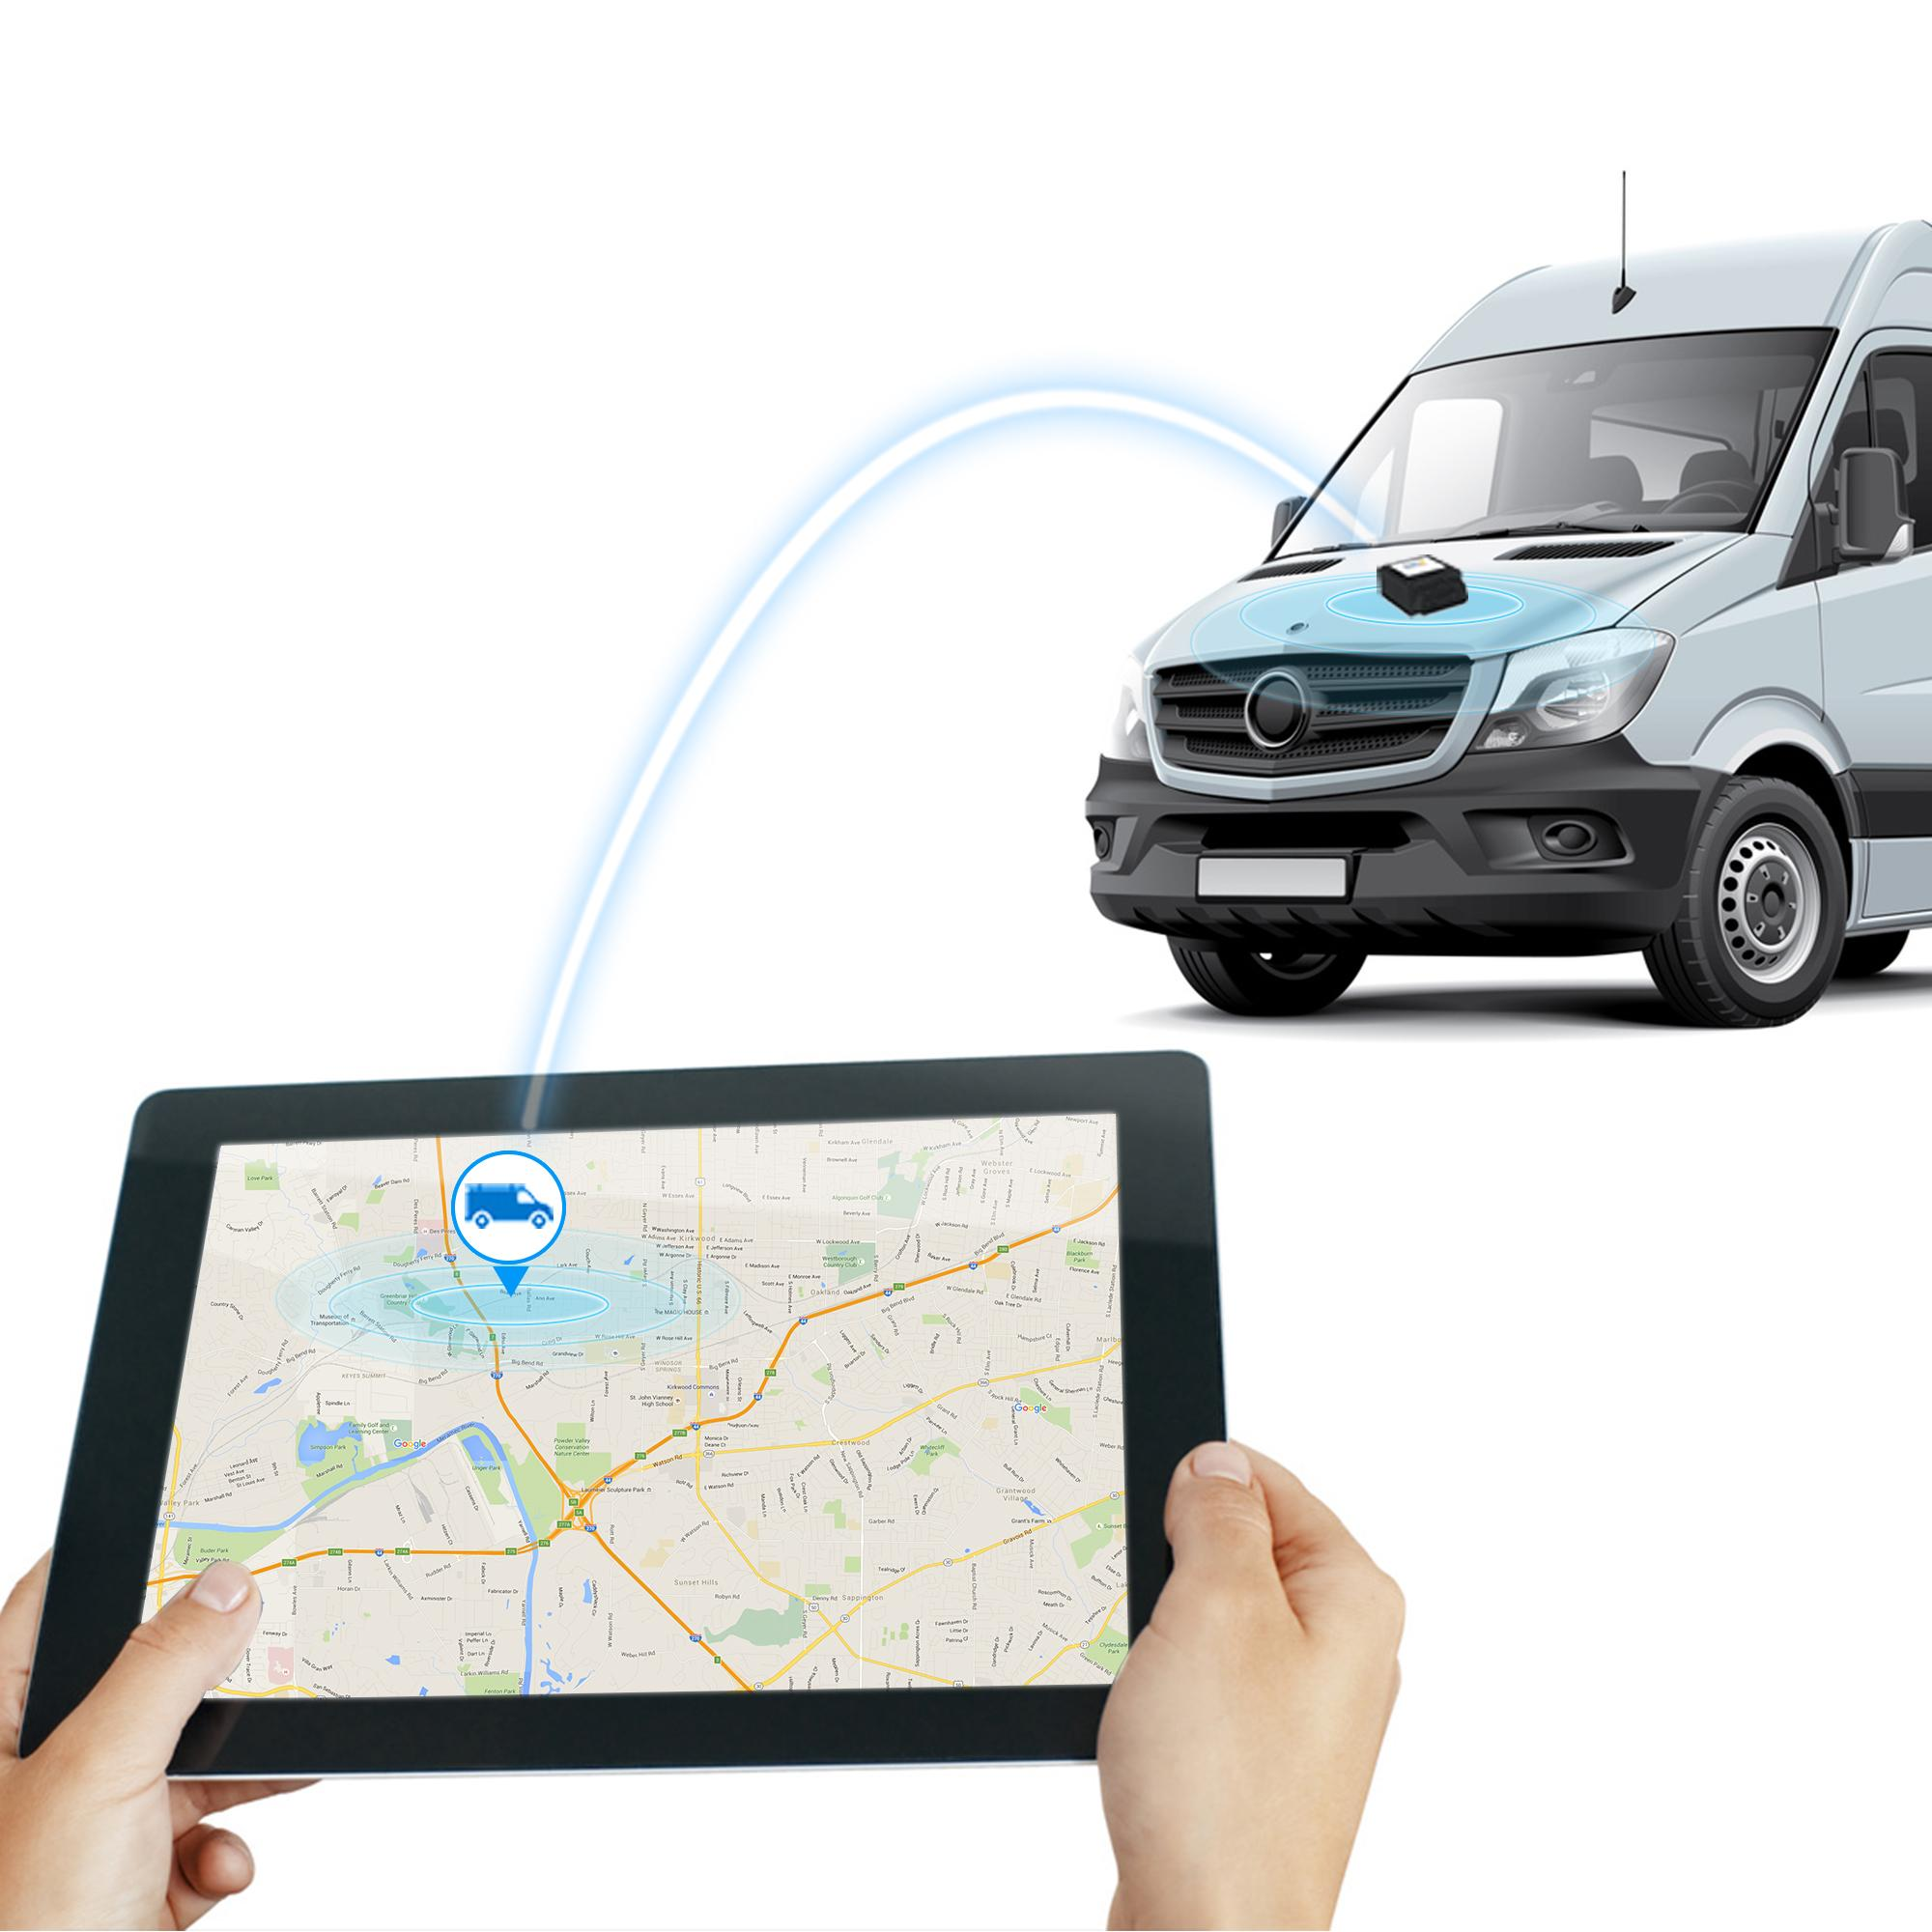 Gps; gps trackers; tracking device; obd; gps tracking device; vehicle